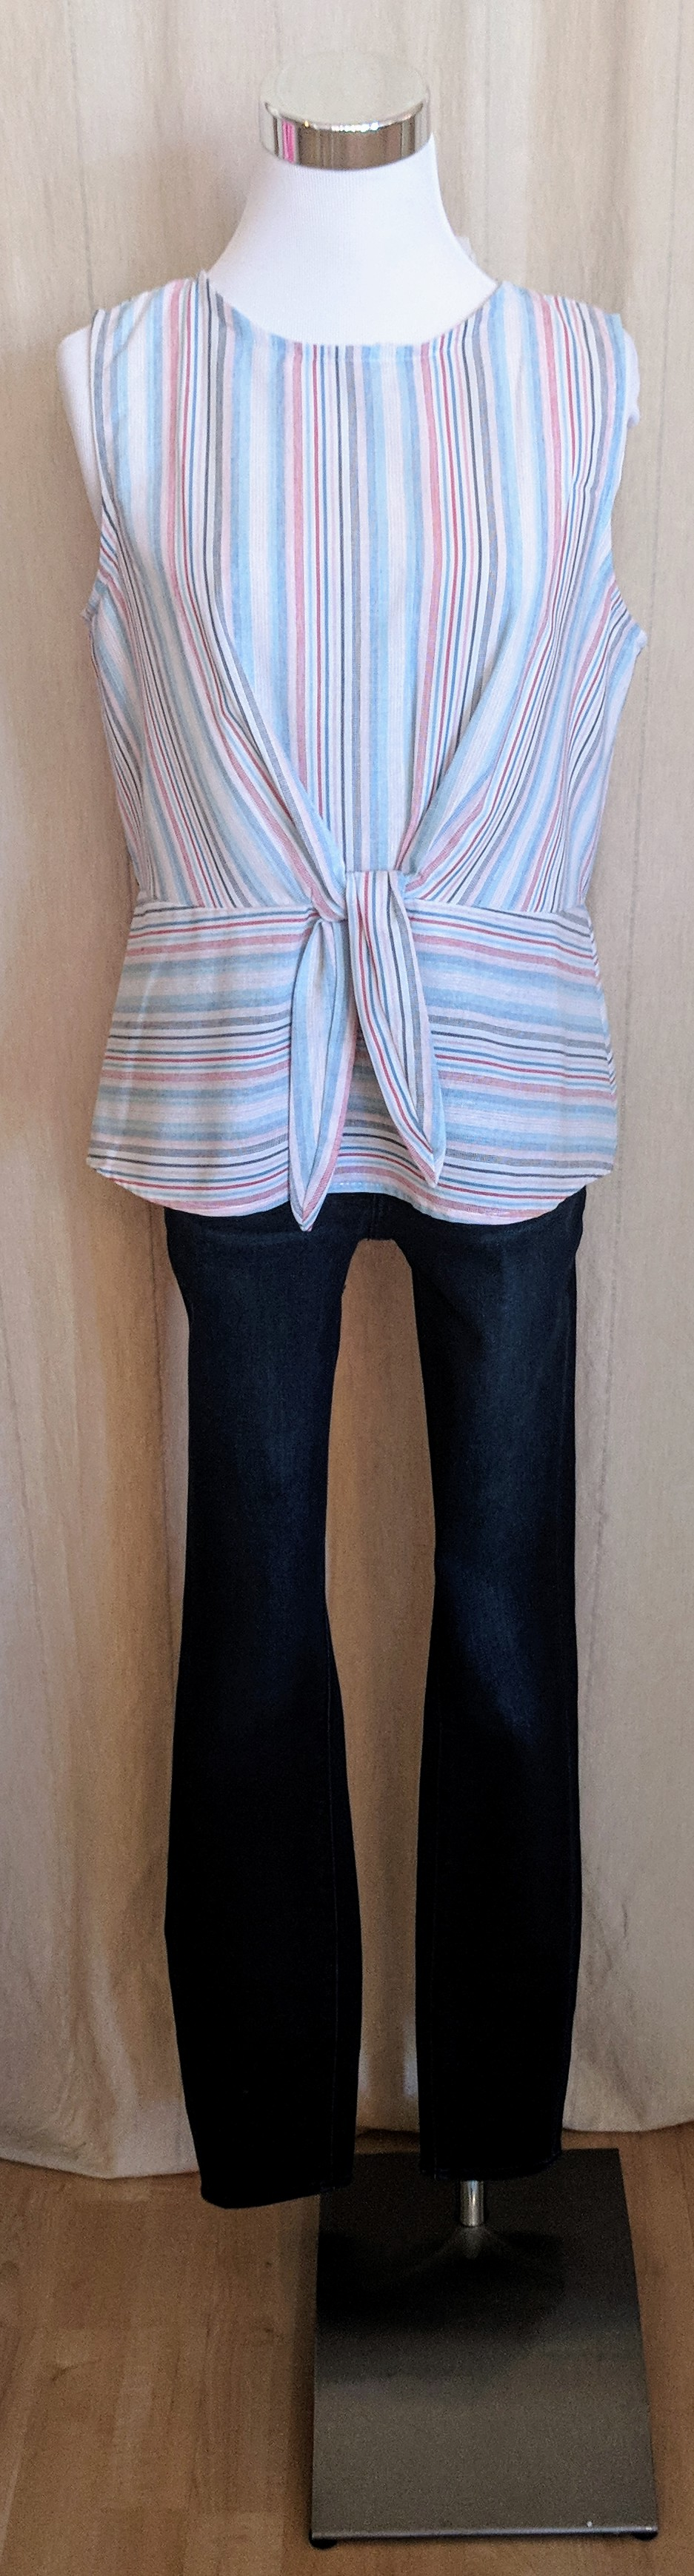 Red and blue stripe tank top with tie detail.